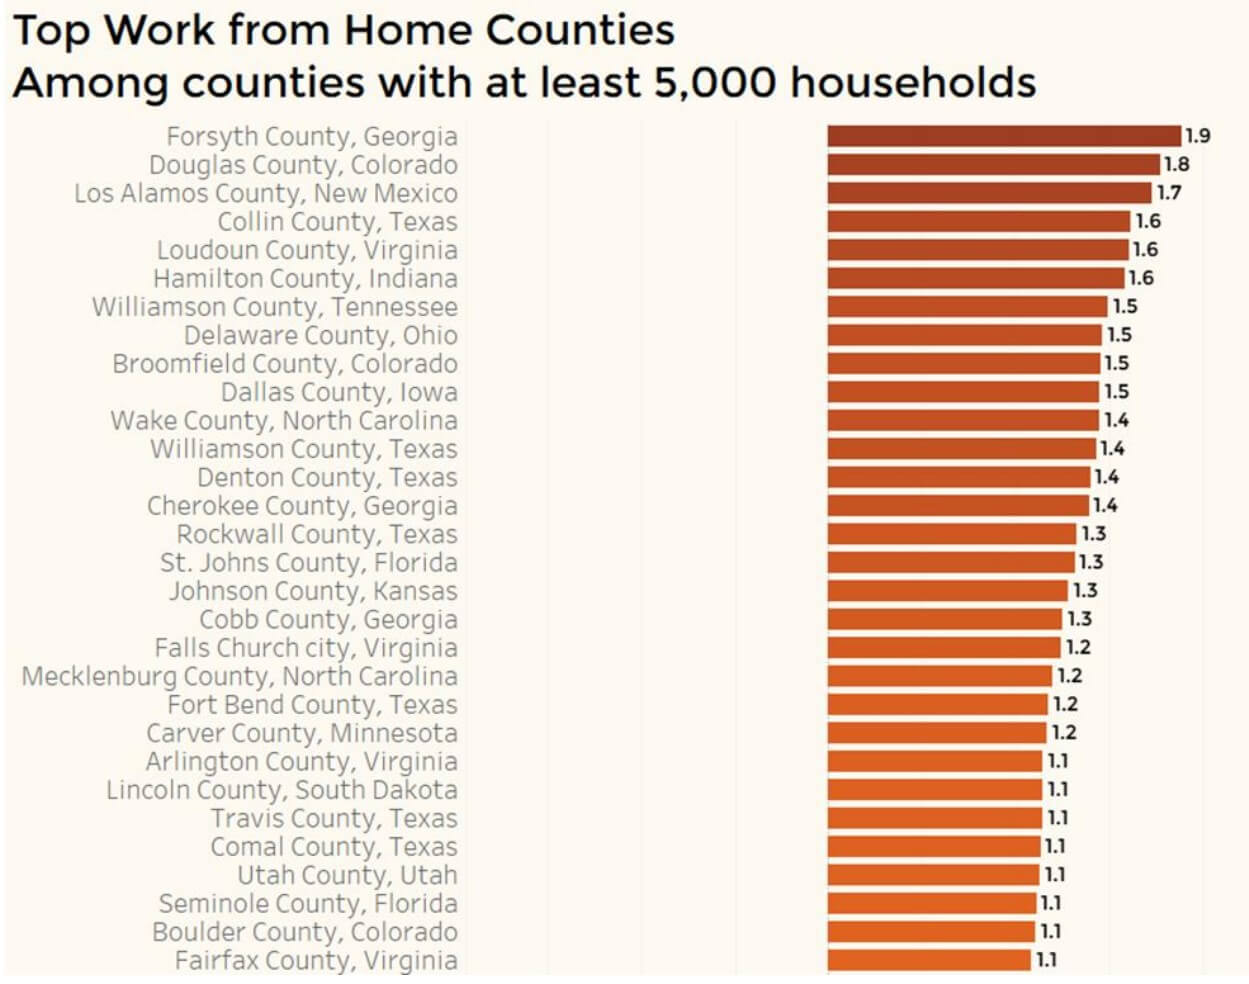 NAR - Top Work from Home Counties in the US